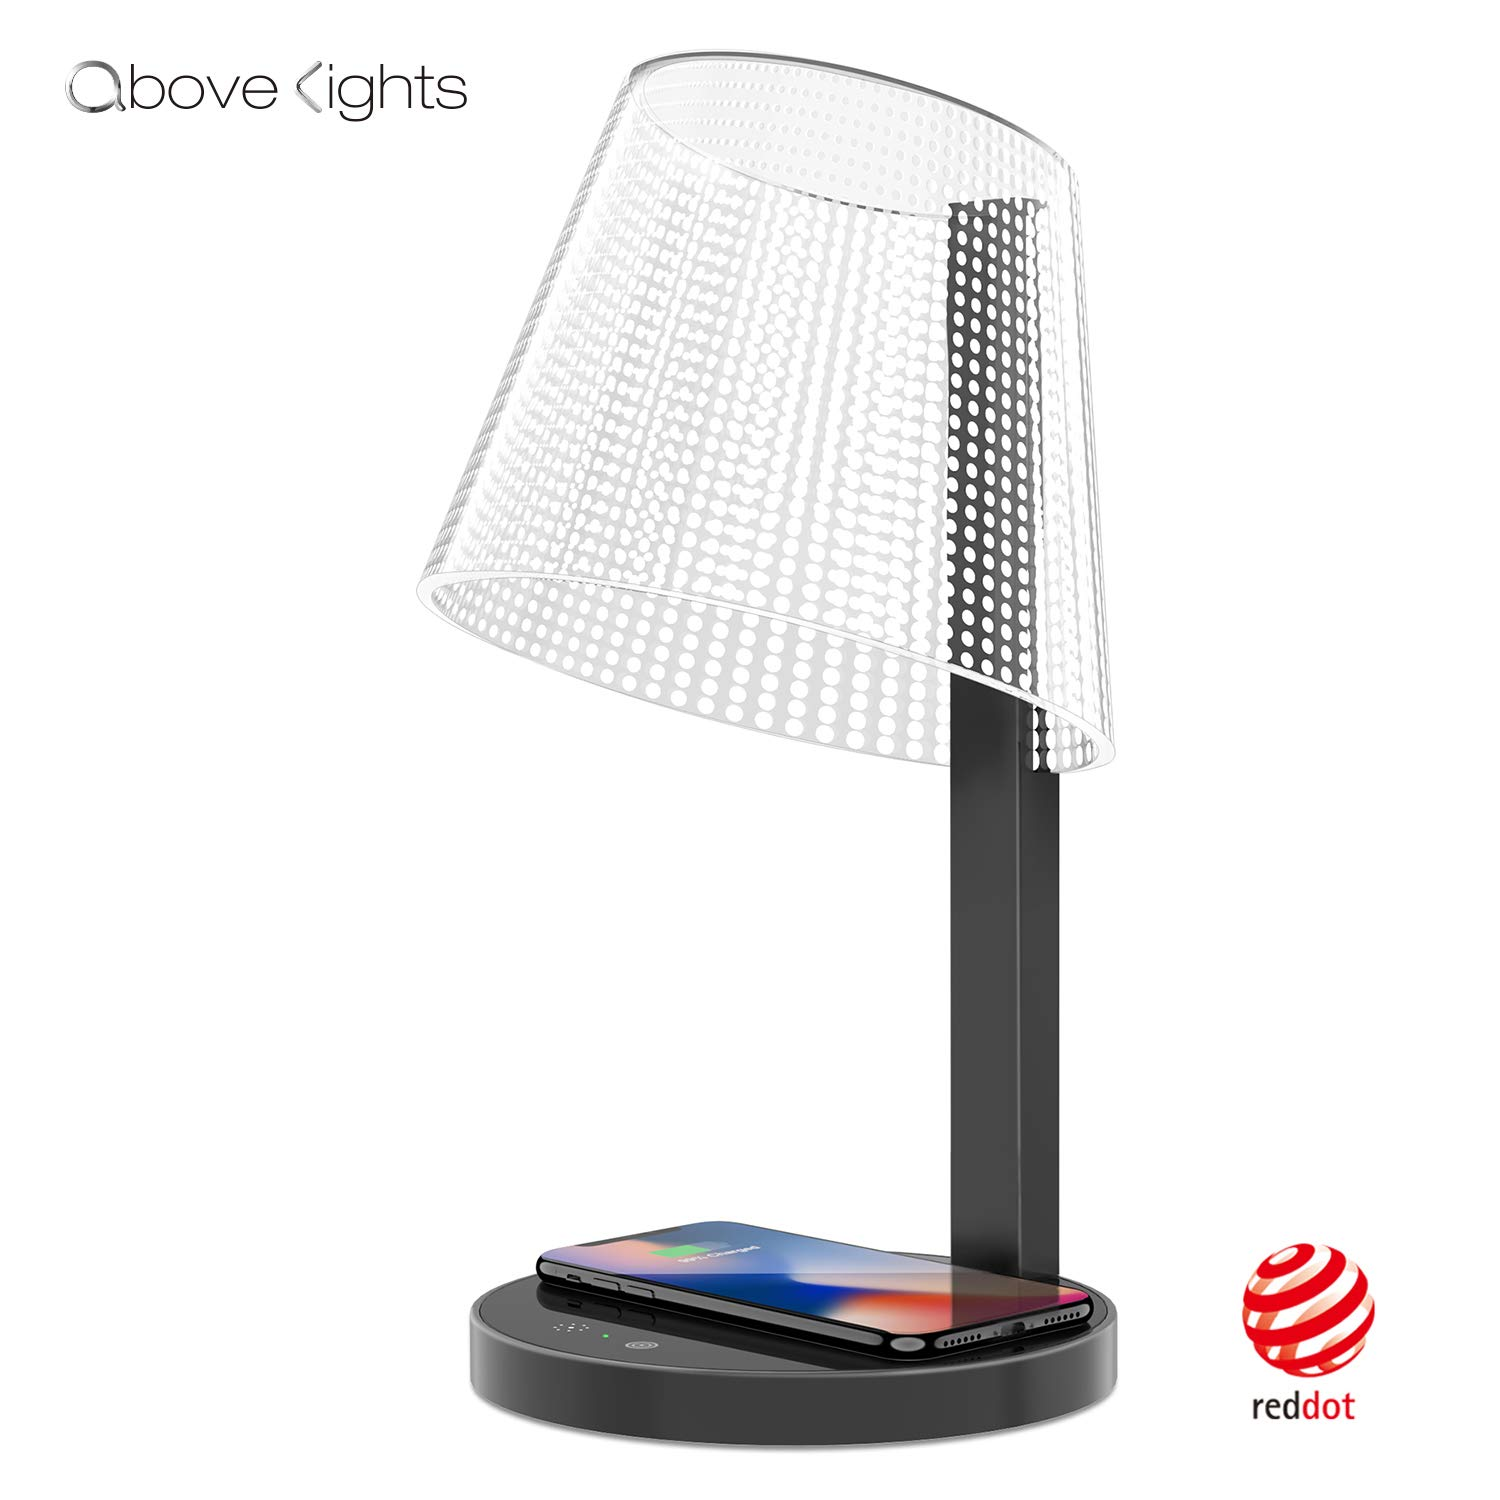 LED Table Lamp, Above Lights 7W Office Dimmable Desk Light with 10W Wireless Charger, Infrared Switch, Hidden Light Source, 5 Colors & Brightness, and USB Charging Port- Reddot Design Award